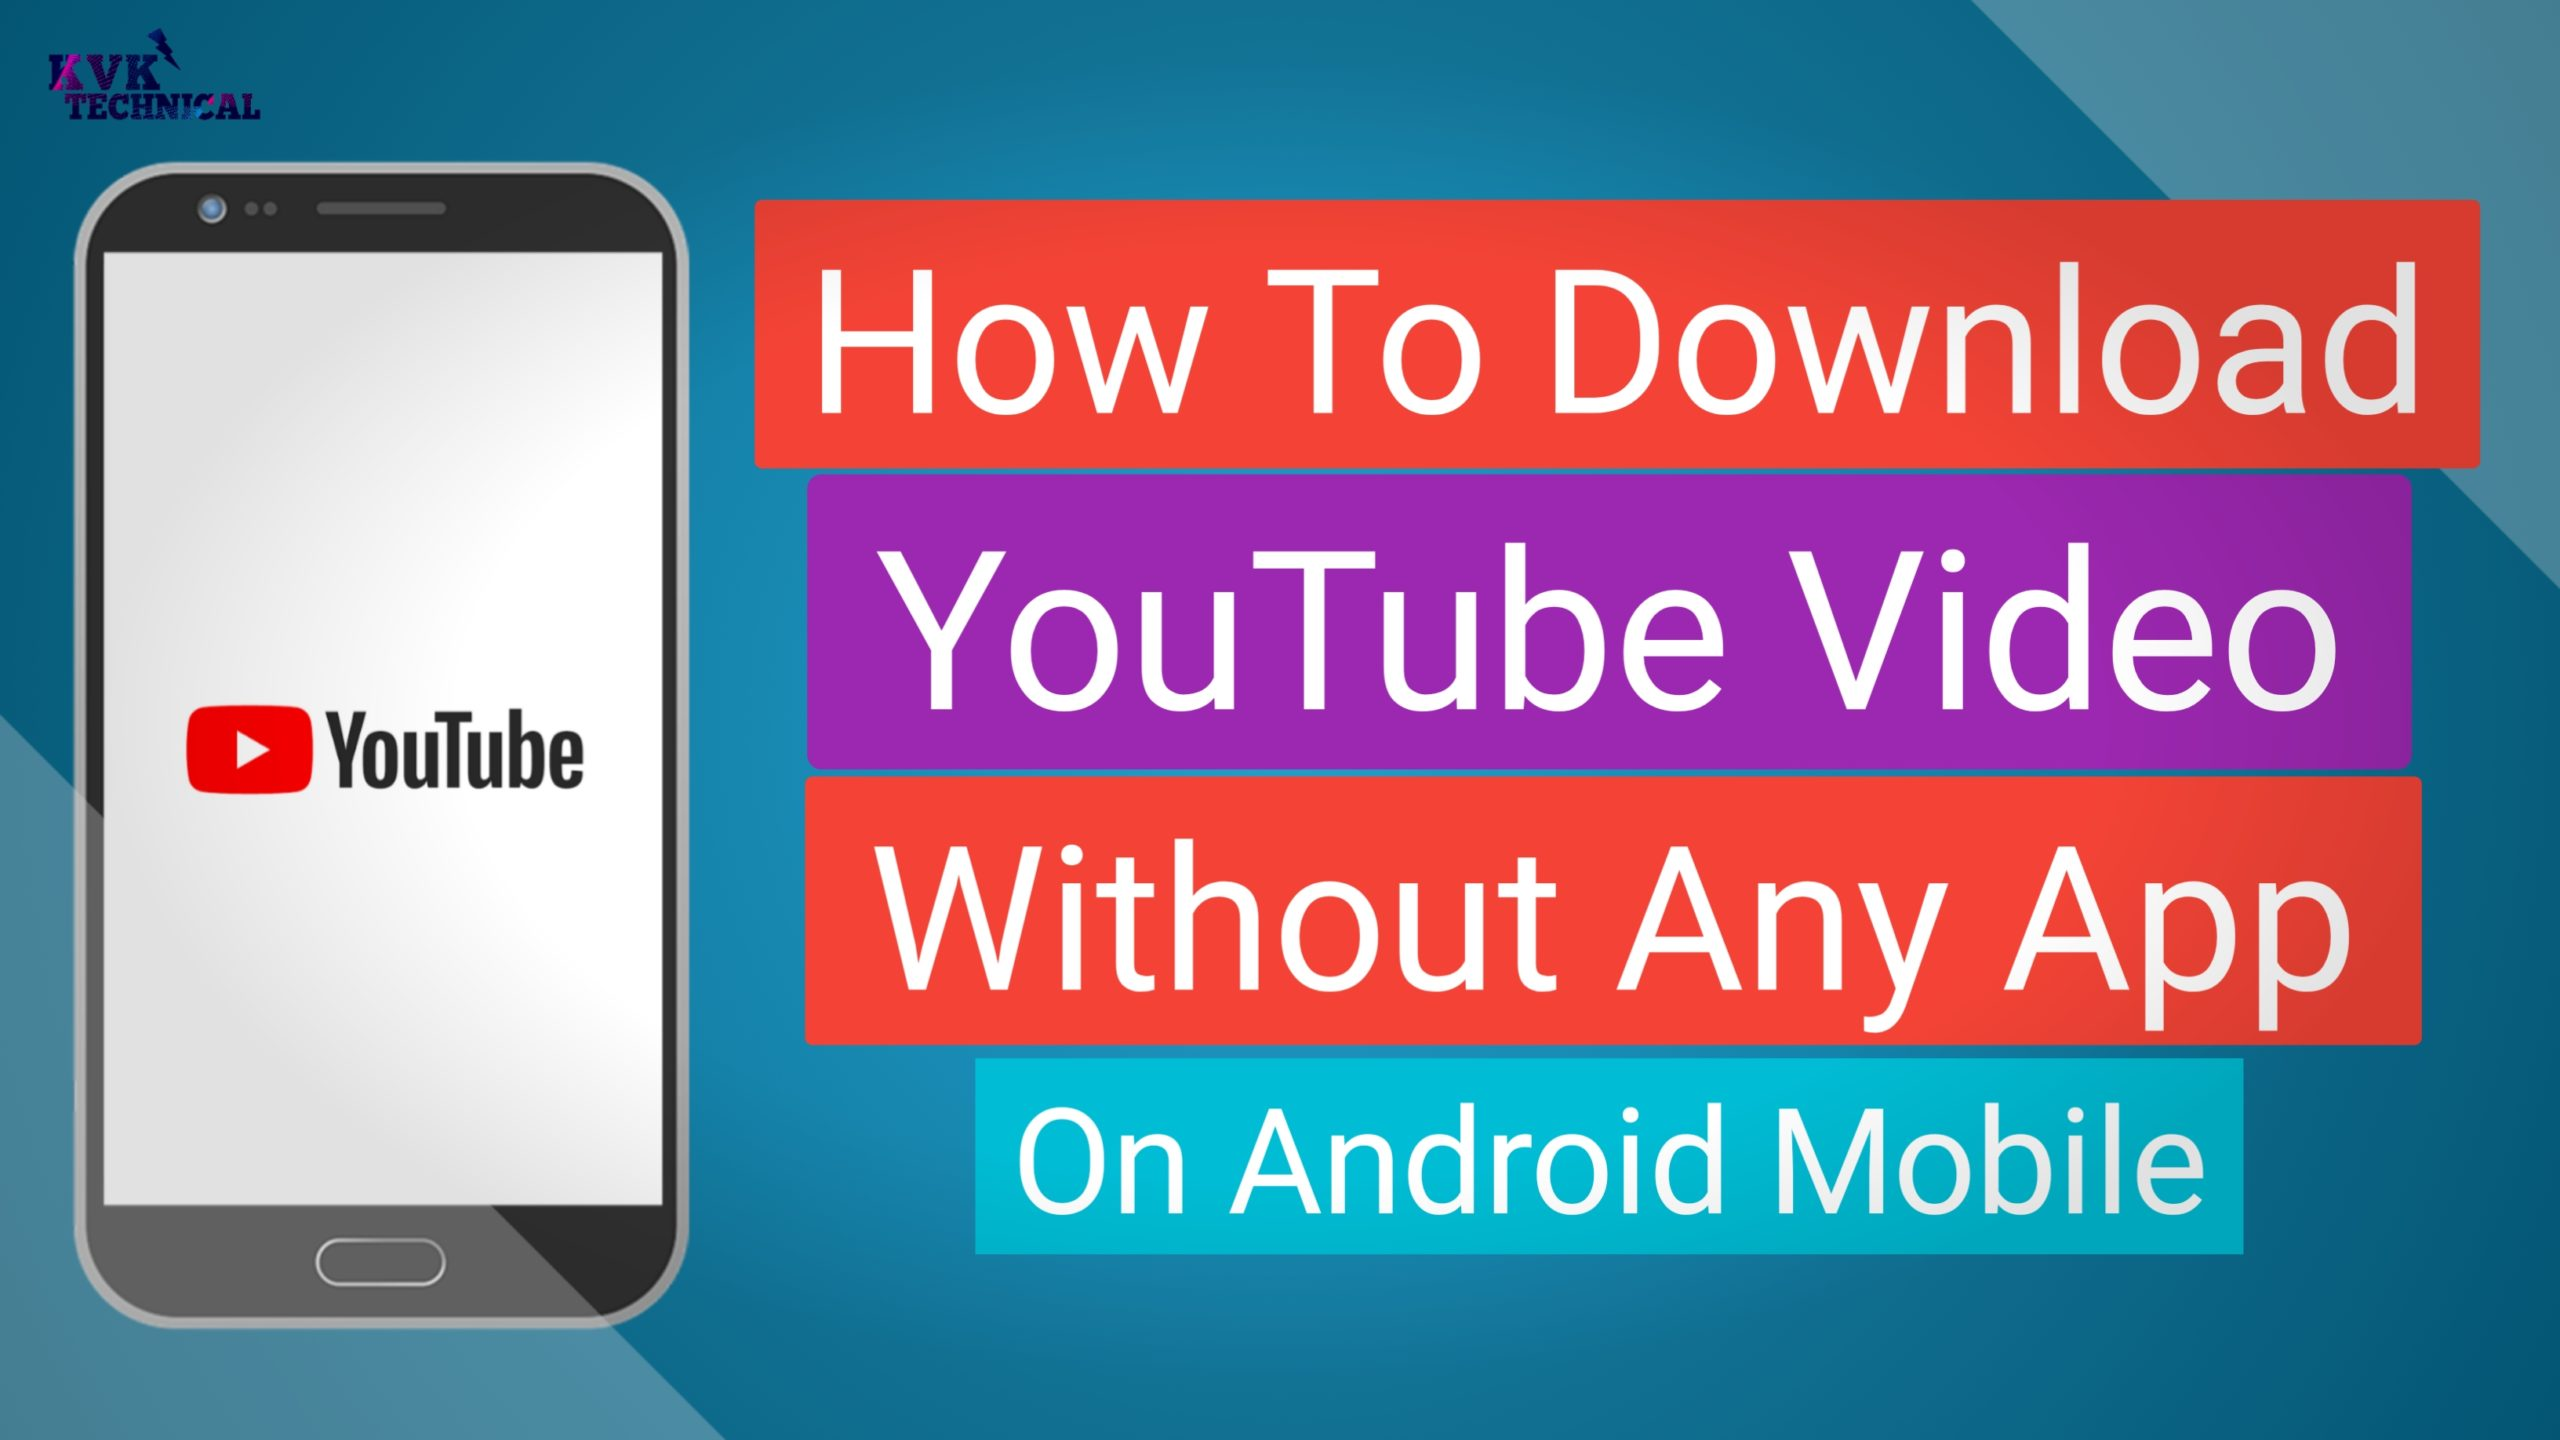 How To Download Youtube Video Without Any App On Android Mobile Kvk Technical